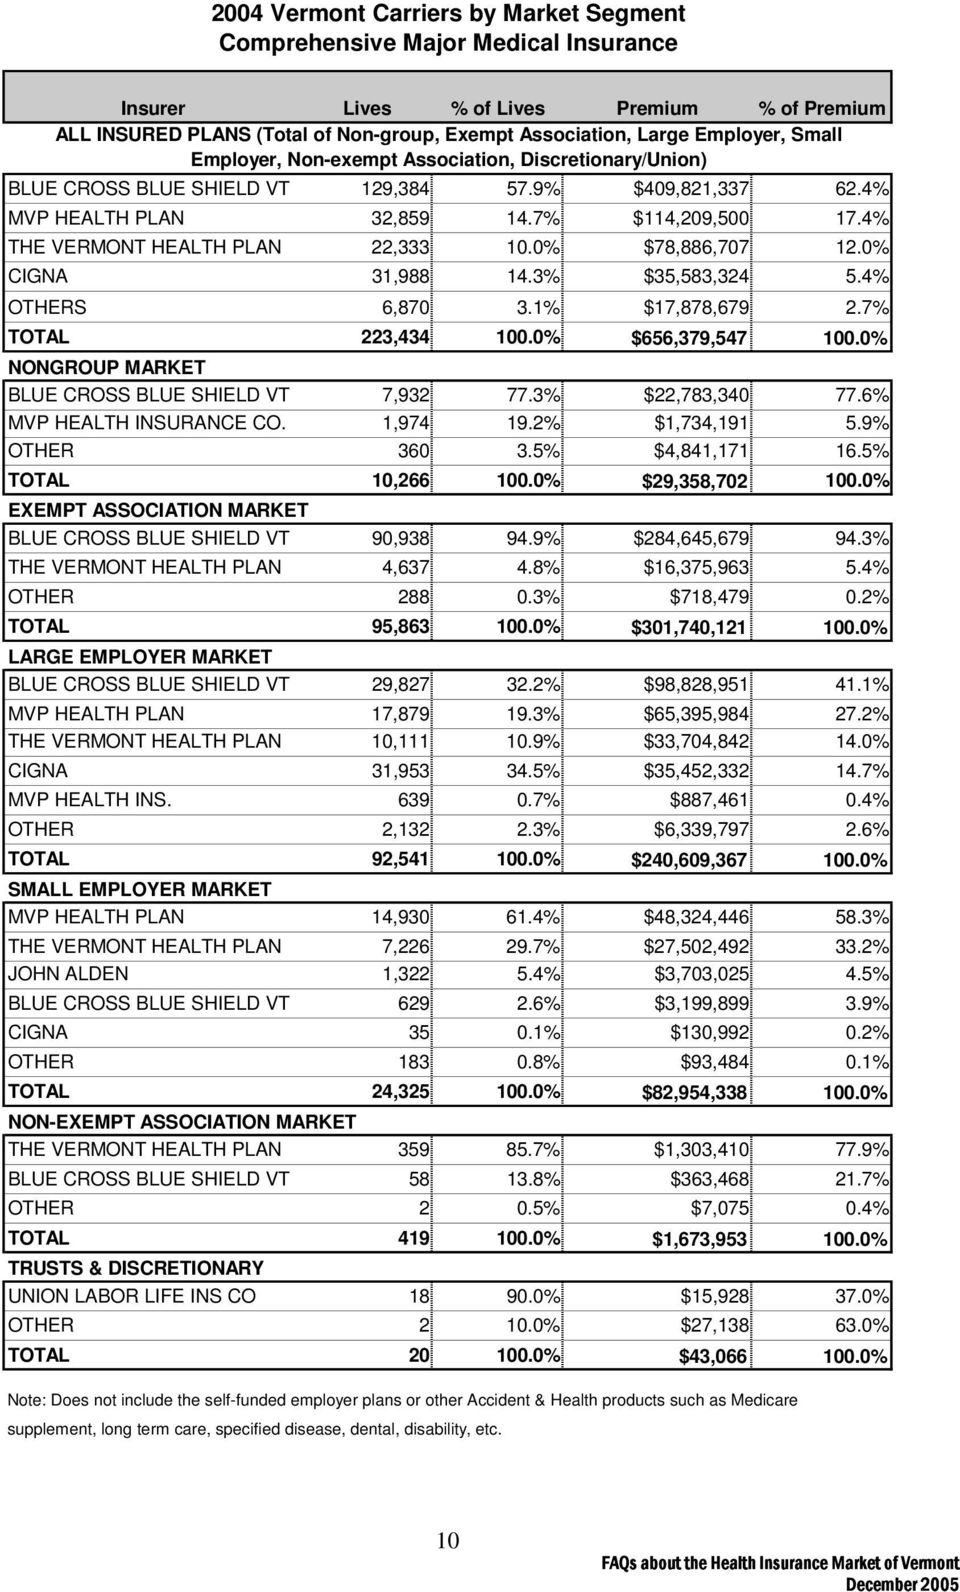 4% THE VERMONT HEALTH PLAN 22,333 10.0% $78,886,707 12.0% CIGNA 31,988 14.3% $35,583,324 5.4% OTHERS 6,870 3.1% $17,878,679 2.7% TOTAL 223,434 100.0% $656,379,547 100.